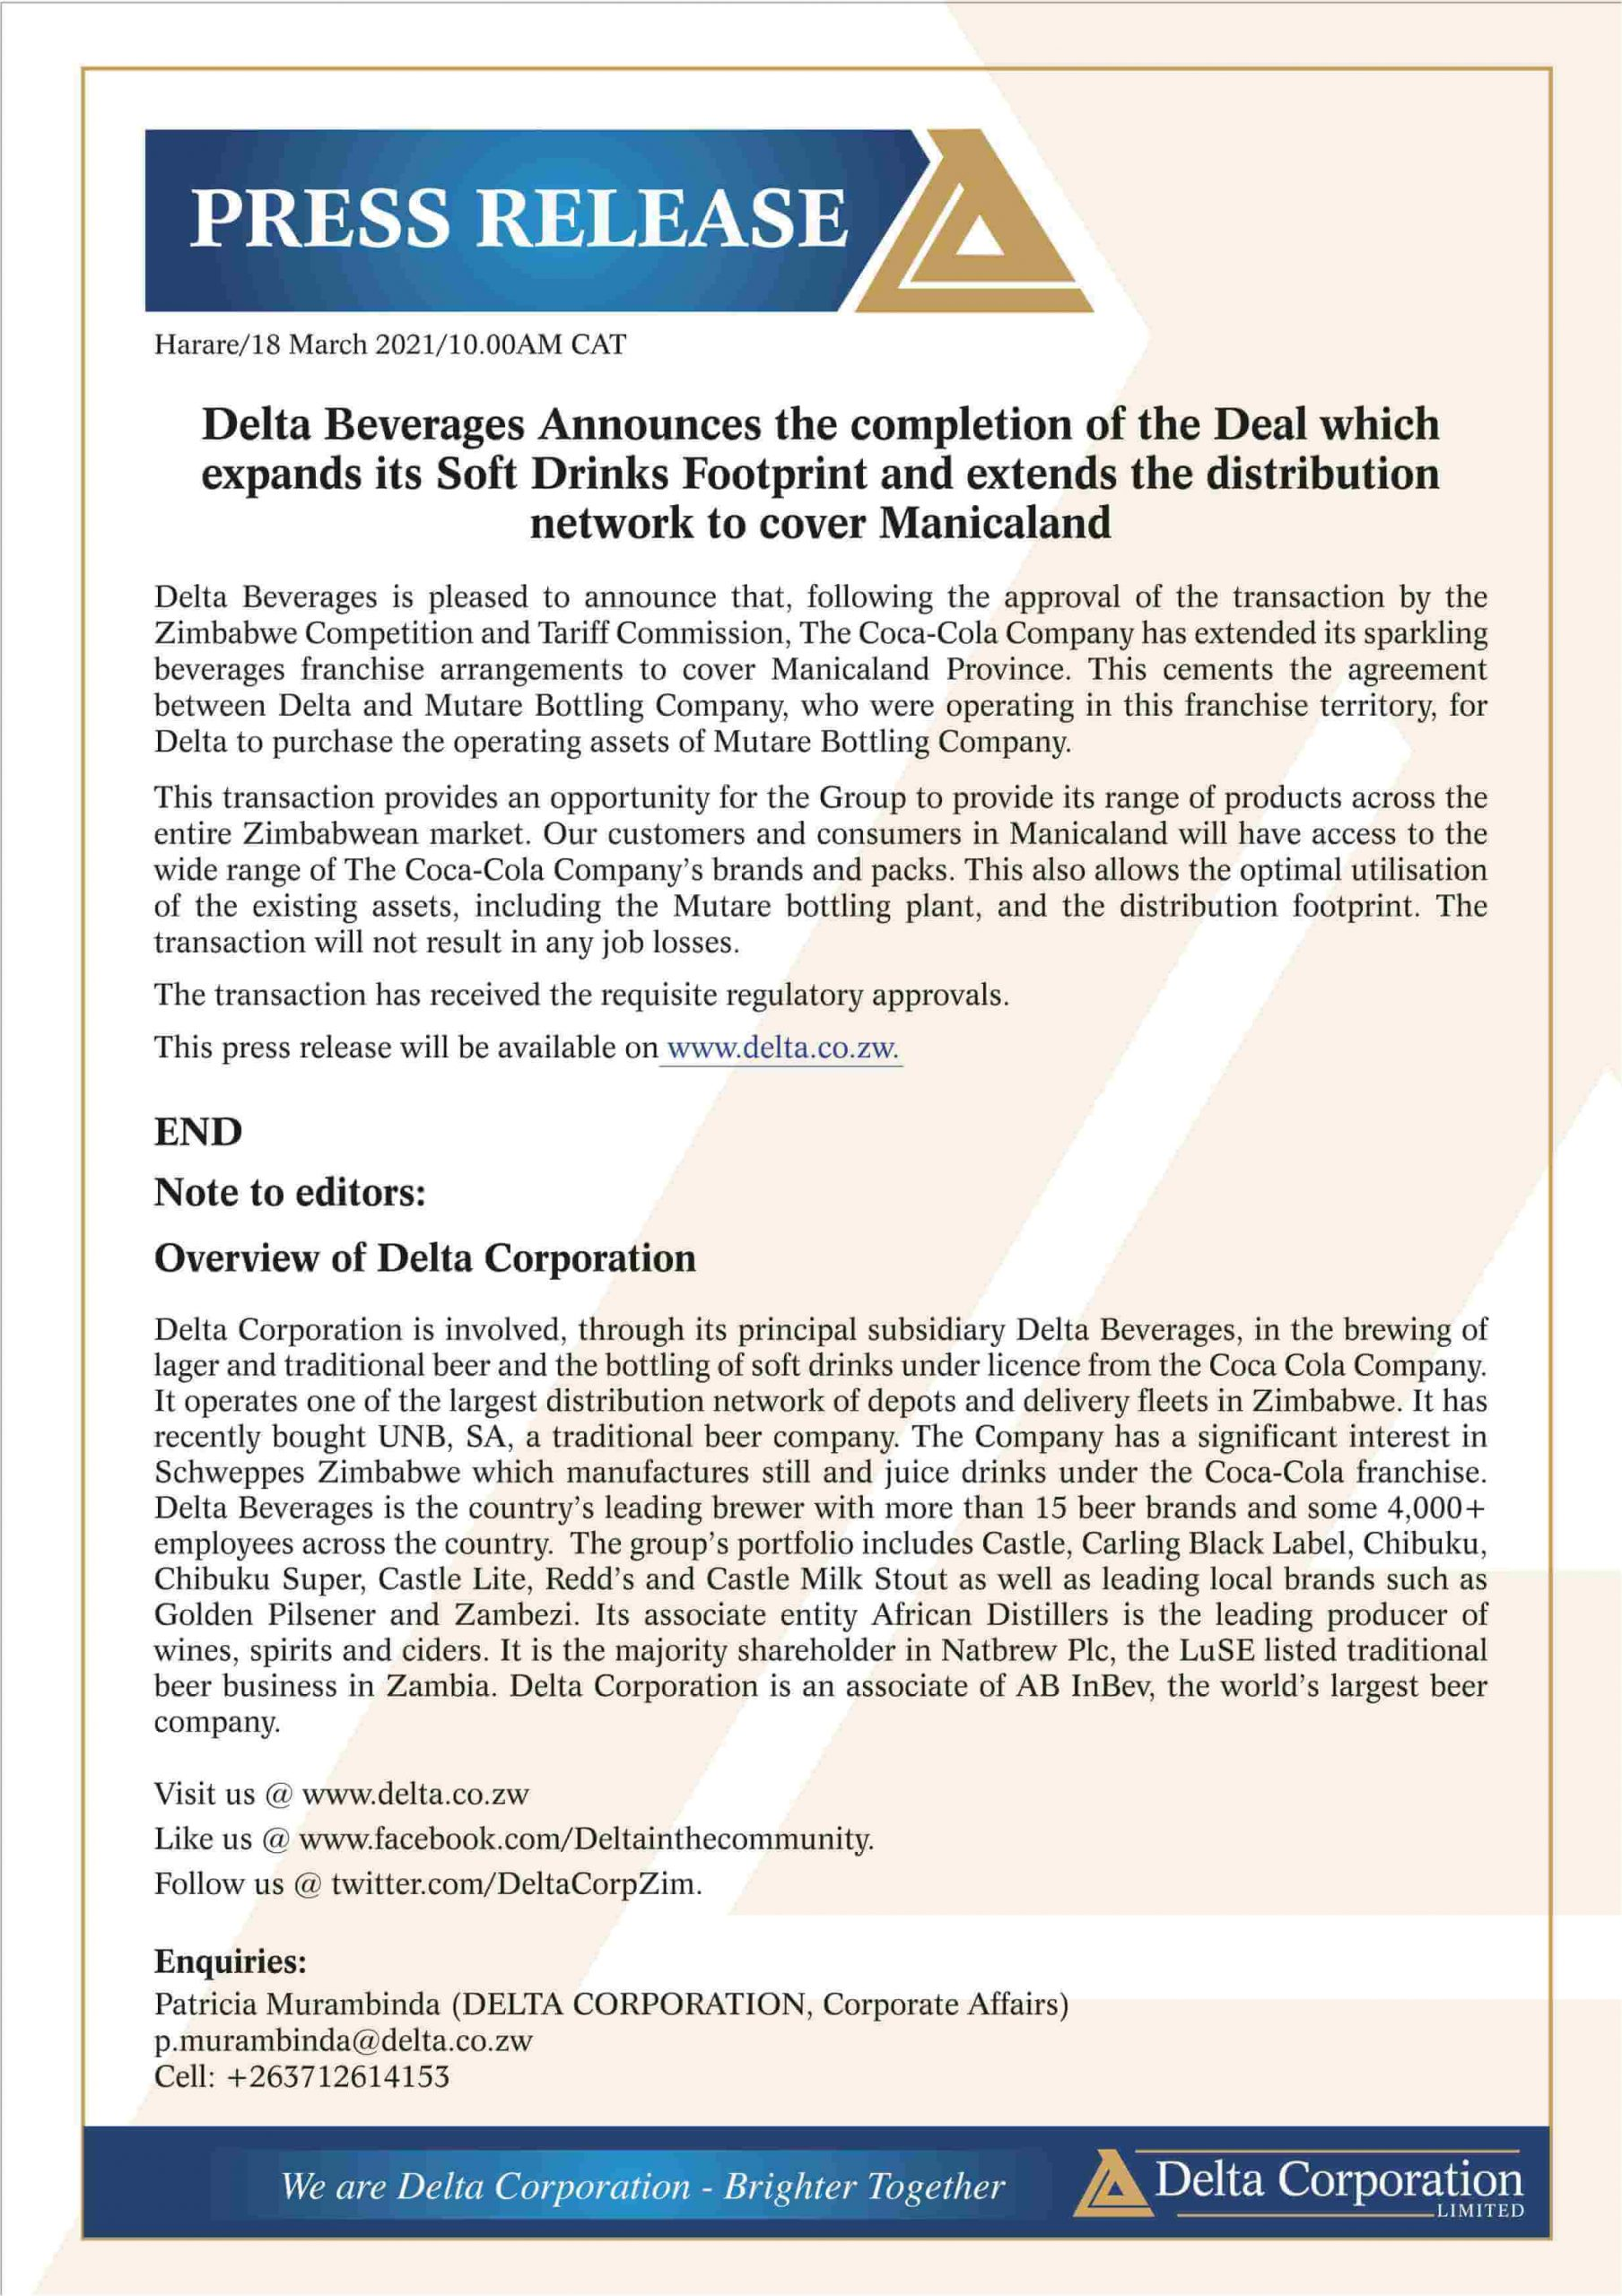 Delta Beverages Announces the completion of the Deal which expands its Soft Drinks Footprint and extends the distribution network to cover Manicaland